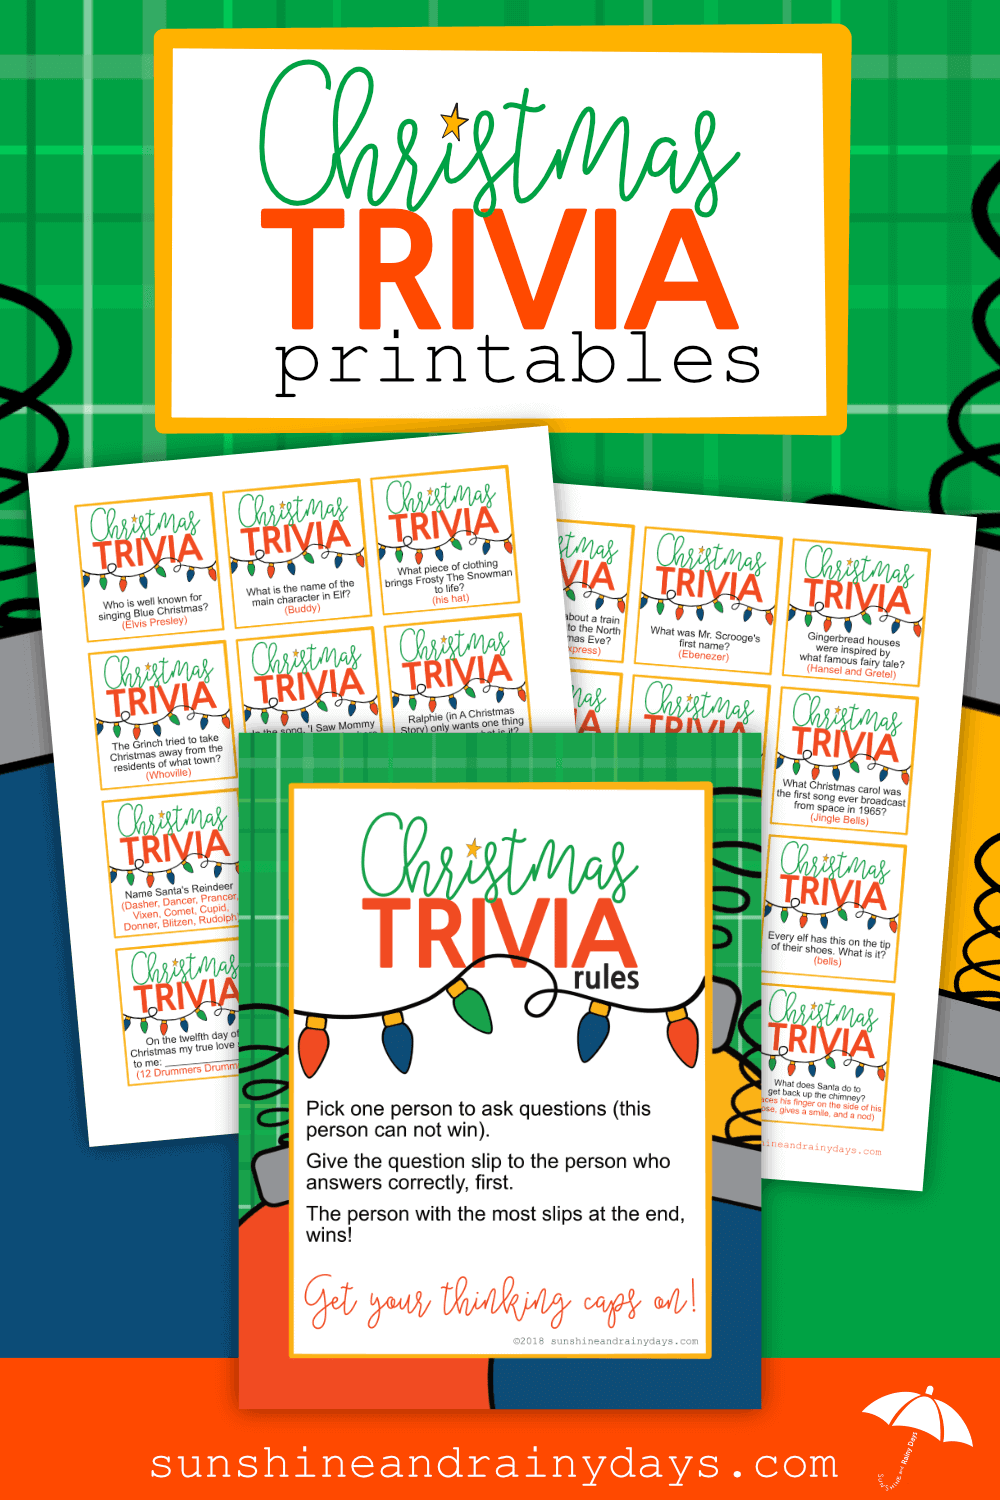 Are you hosting Christmas this year and want to bring a bit of excitement to the crowd? TheChristmas Trivia Gamefits the bill! Even Mr. Grumpy Pants will want to get involved with this one so he can share his vast knowledge! Christmas Trivia Games | Christmas Trivia Printable | Christmas Trivia Games For Family | #ChristmasGames #ChristmasPrintables #SARD